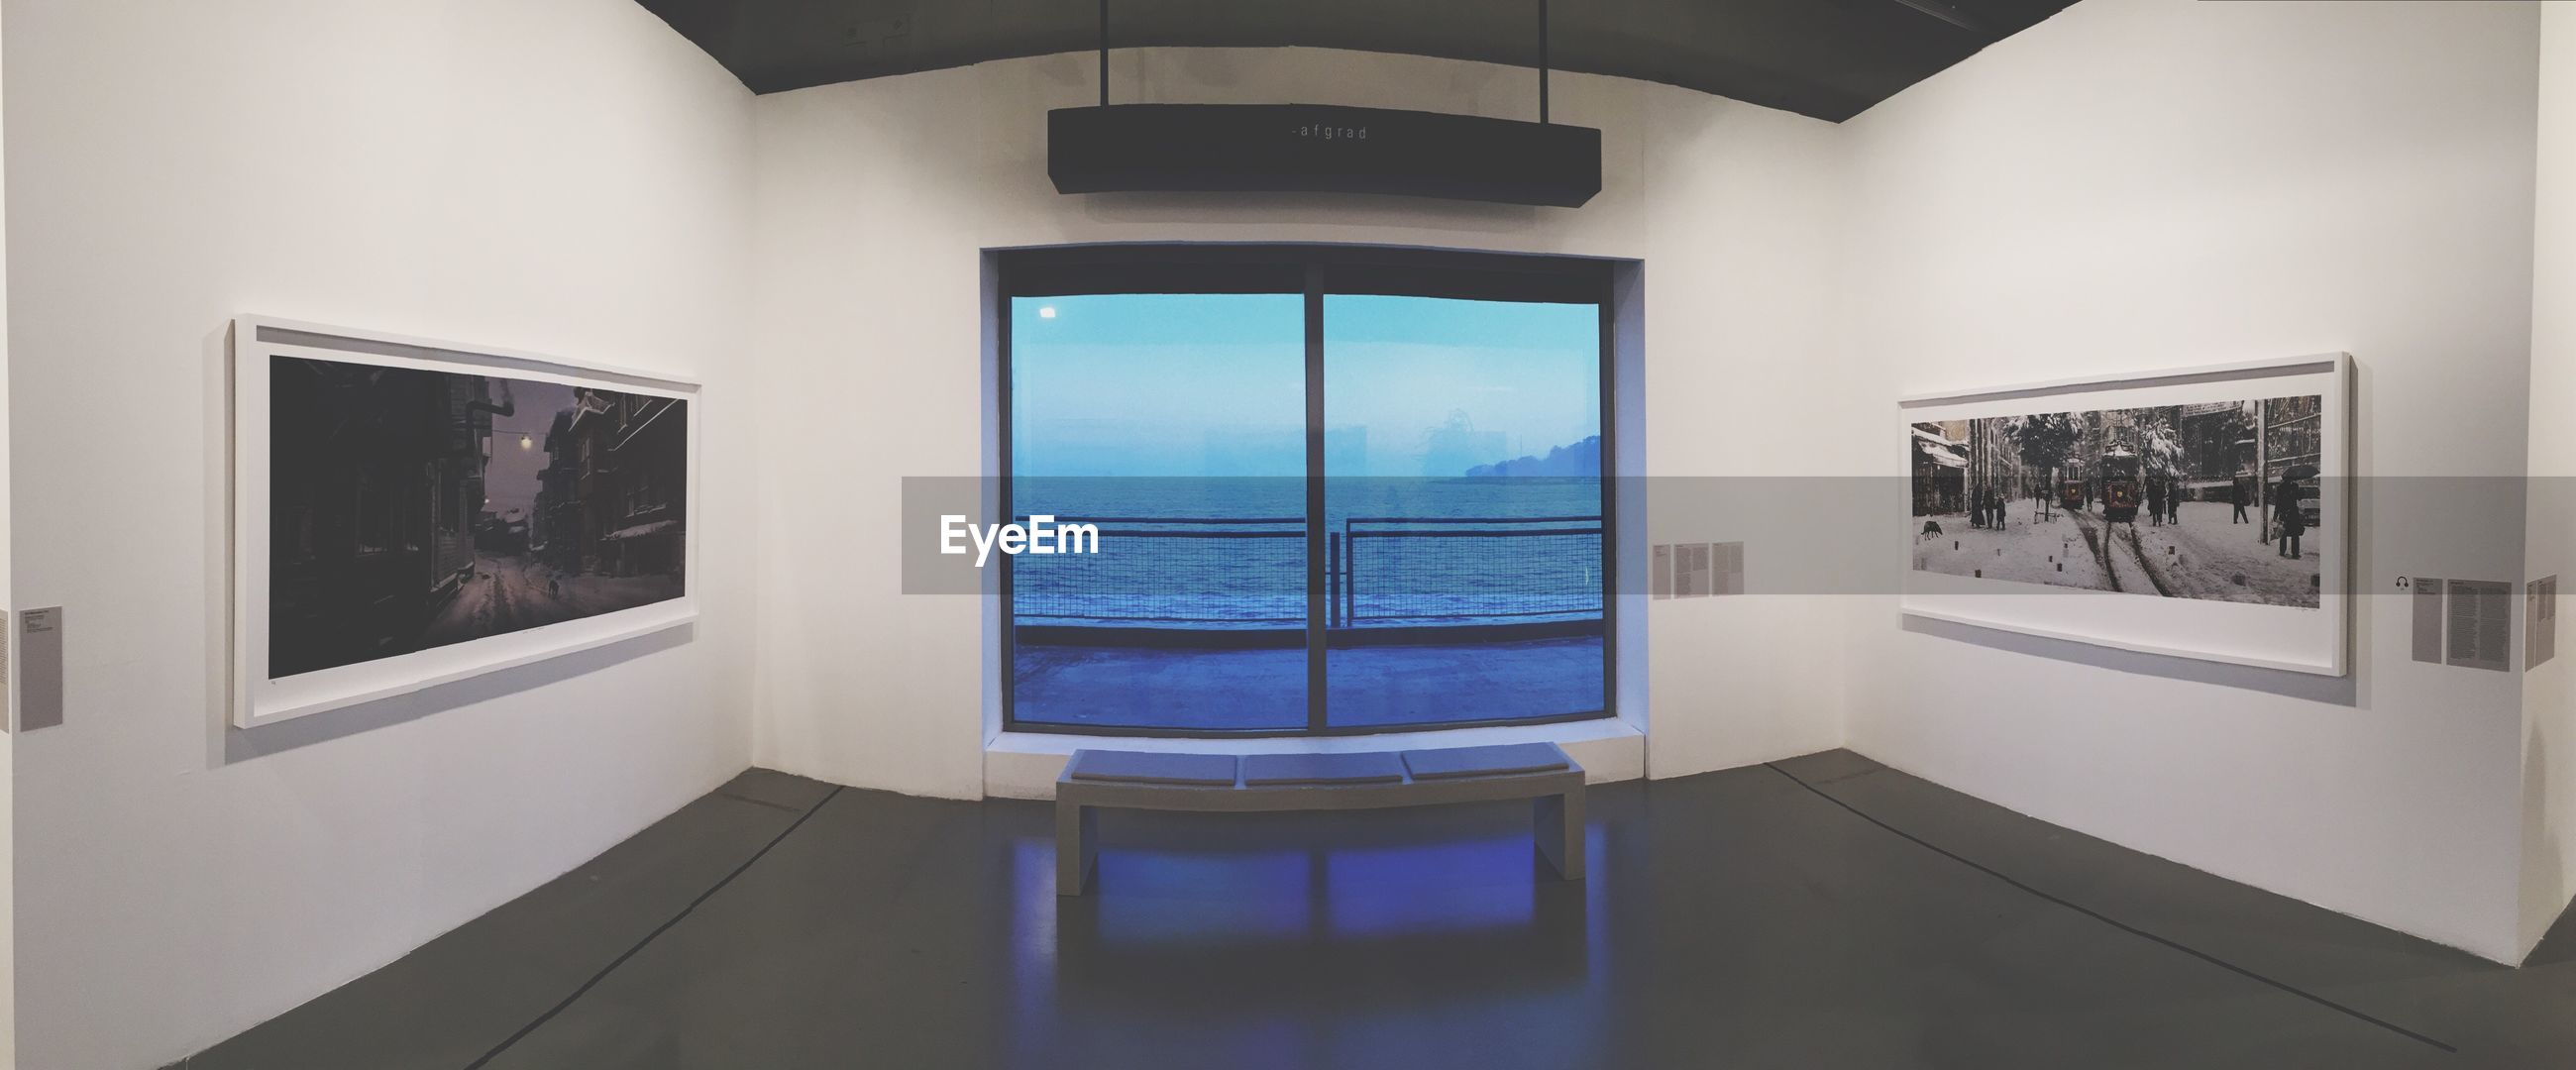 indoors, window, architecture, built structure, glass - material, transparent, sky, house, water, day, reflection, building exterior, no people, blue, building, absence, sunlight, sea, door, empty